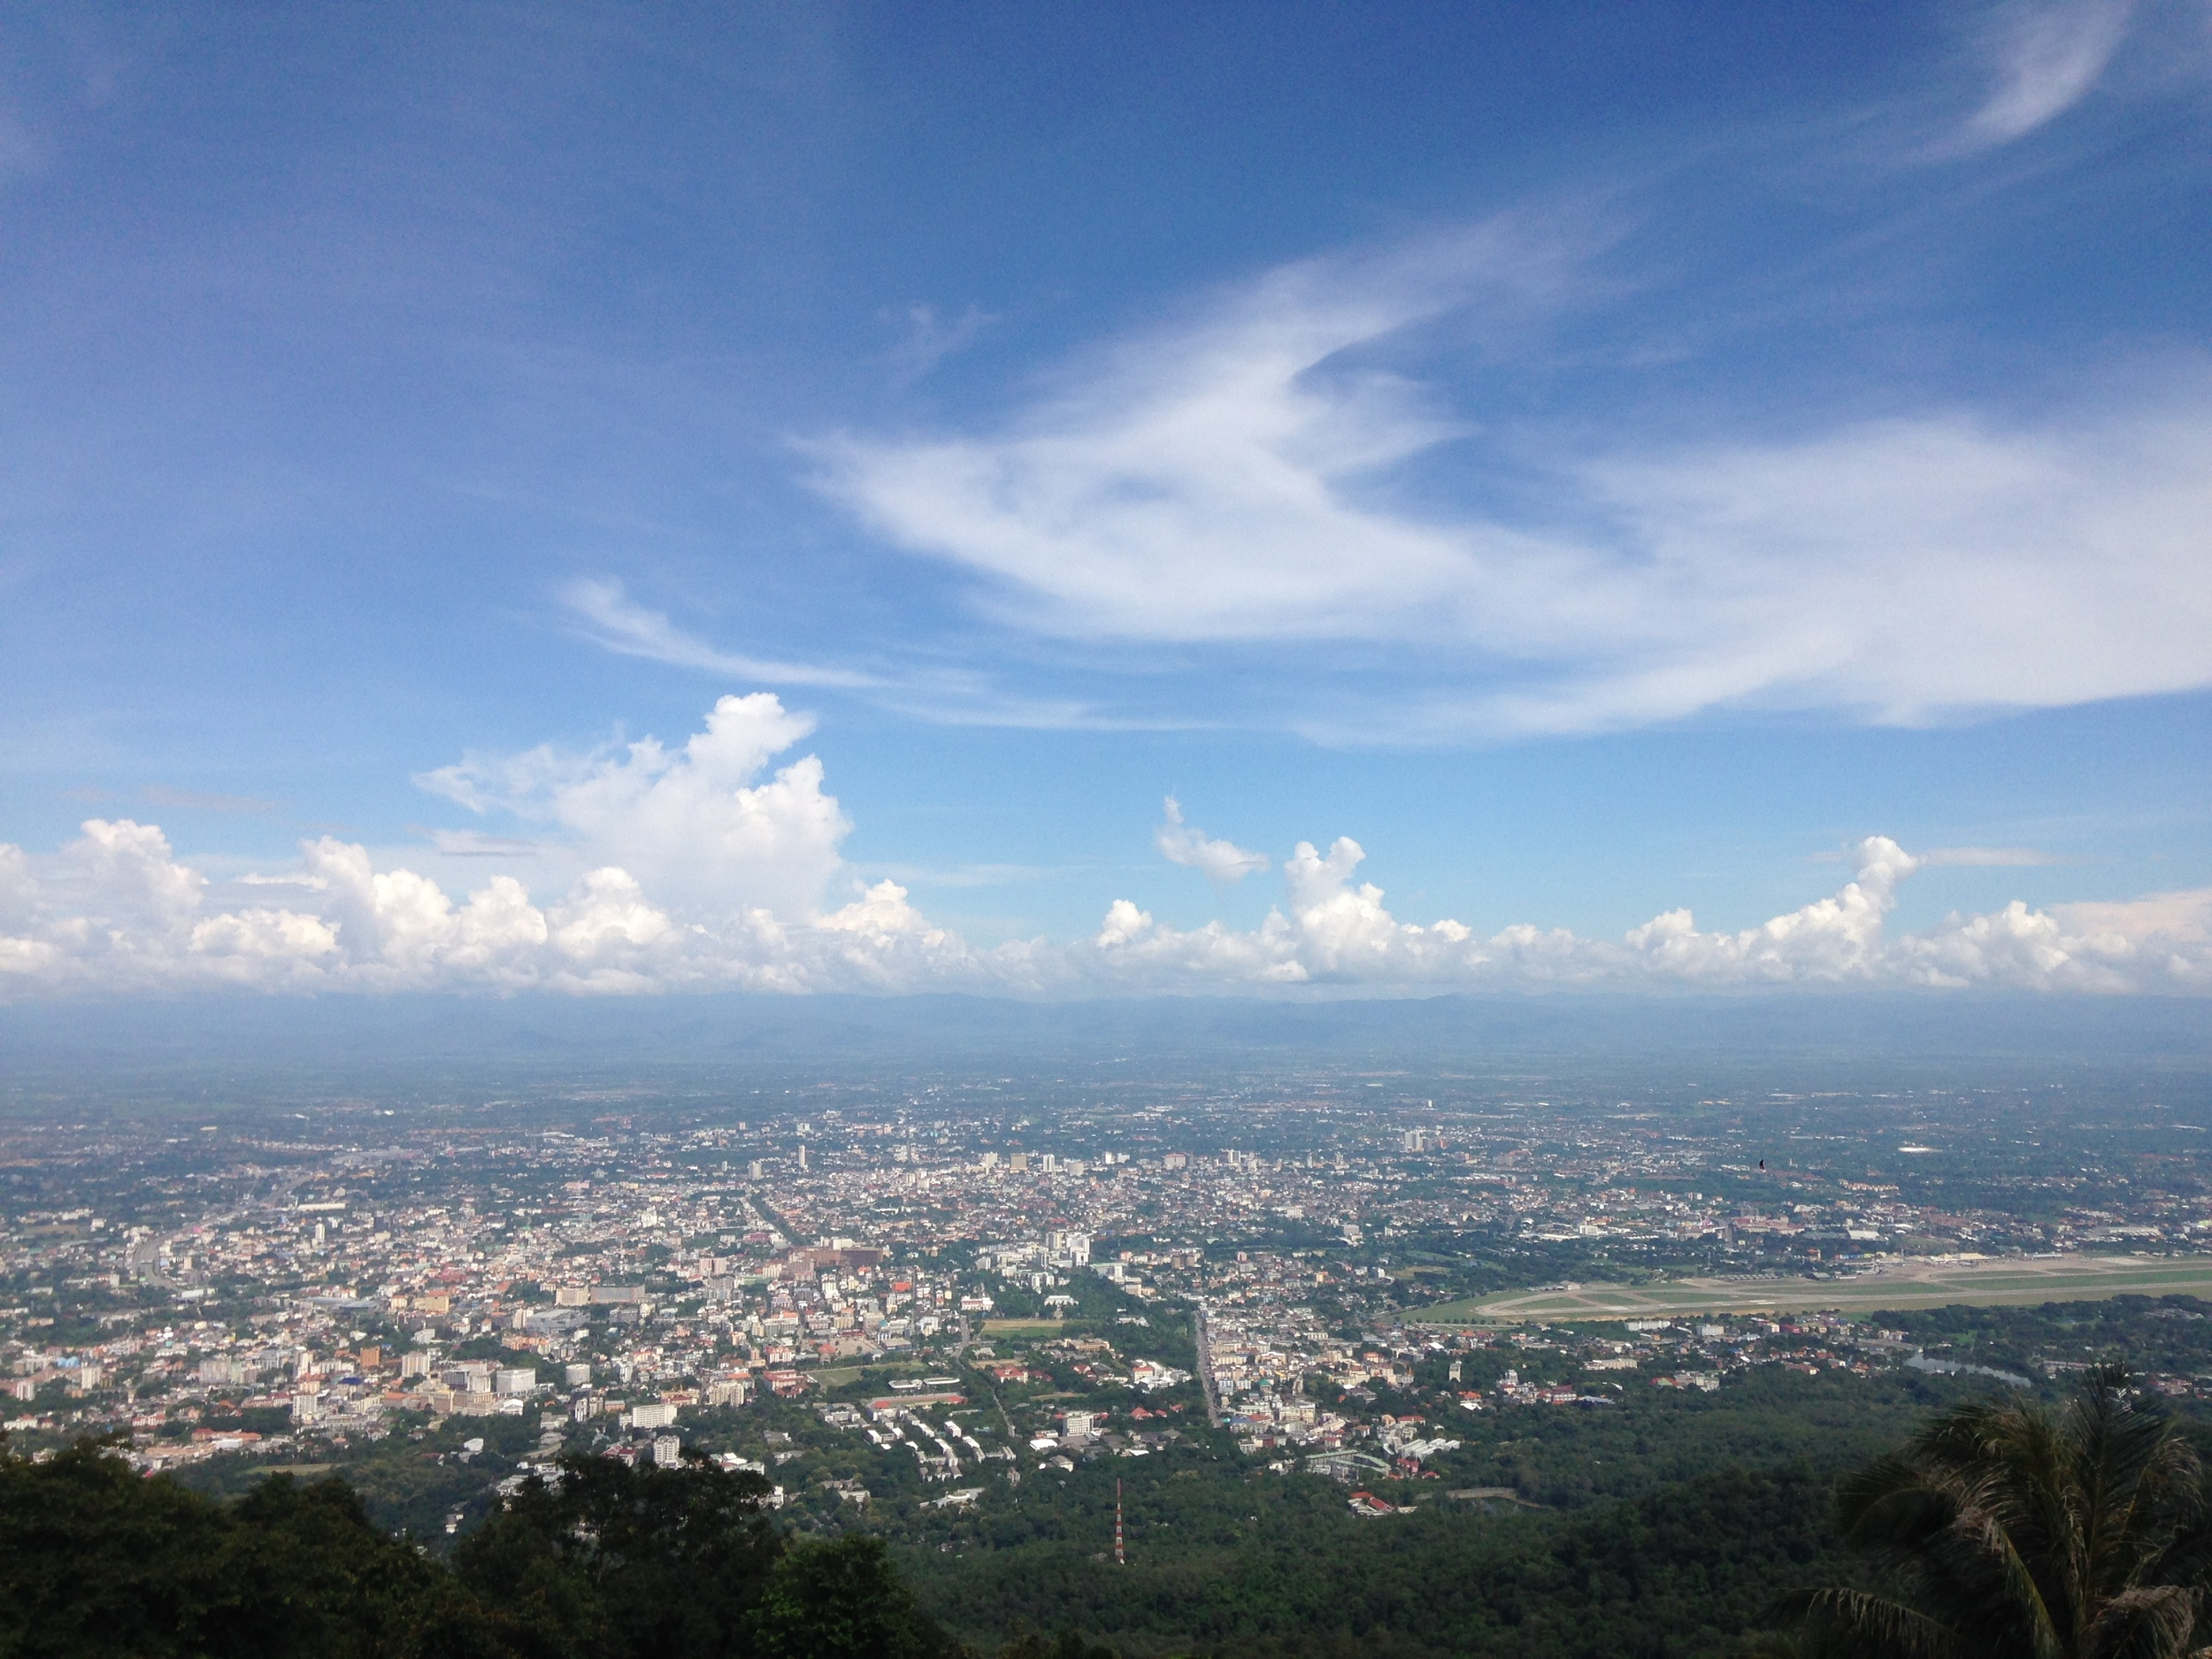 The view of Chiang Mai from Doi Suthep